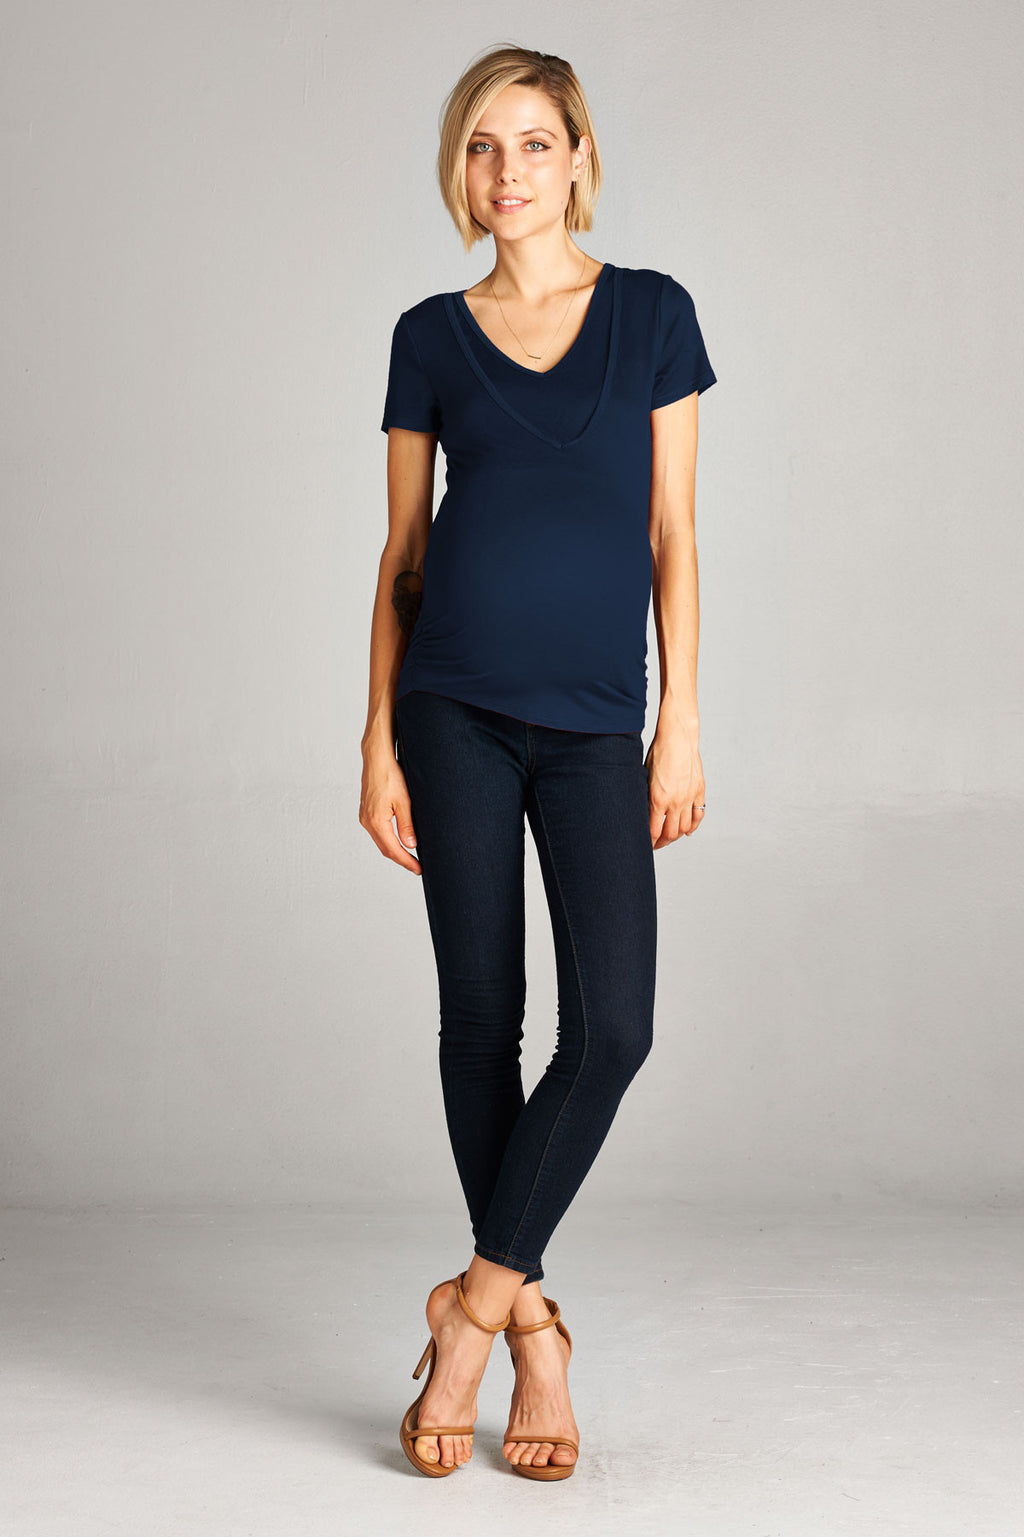 V-Neck Double Layer Nursing and Maternity Top